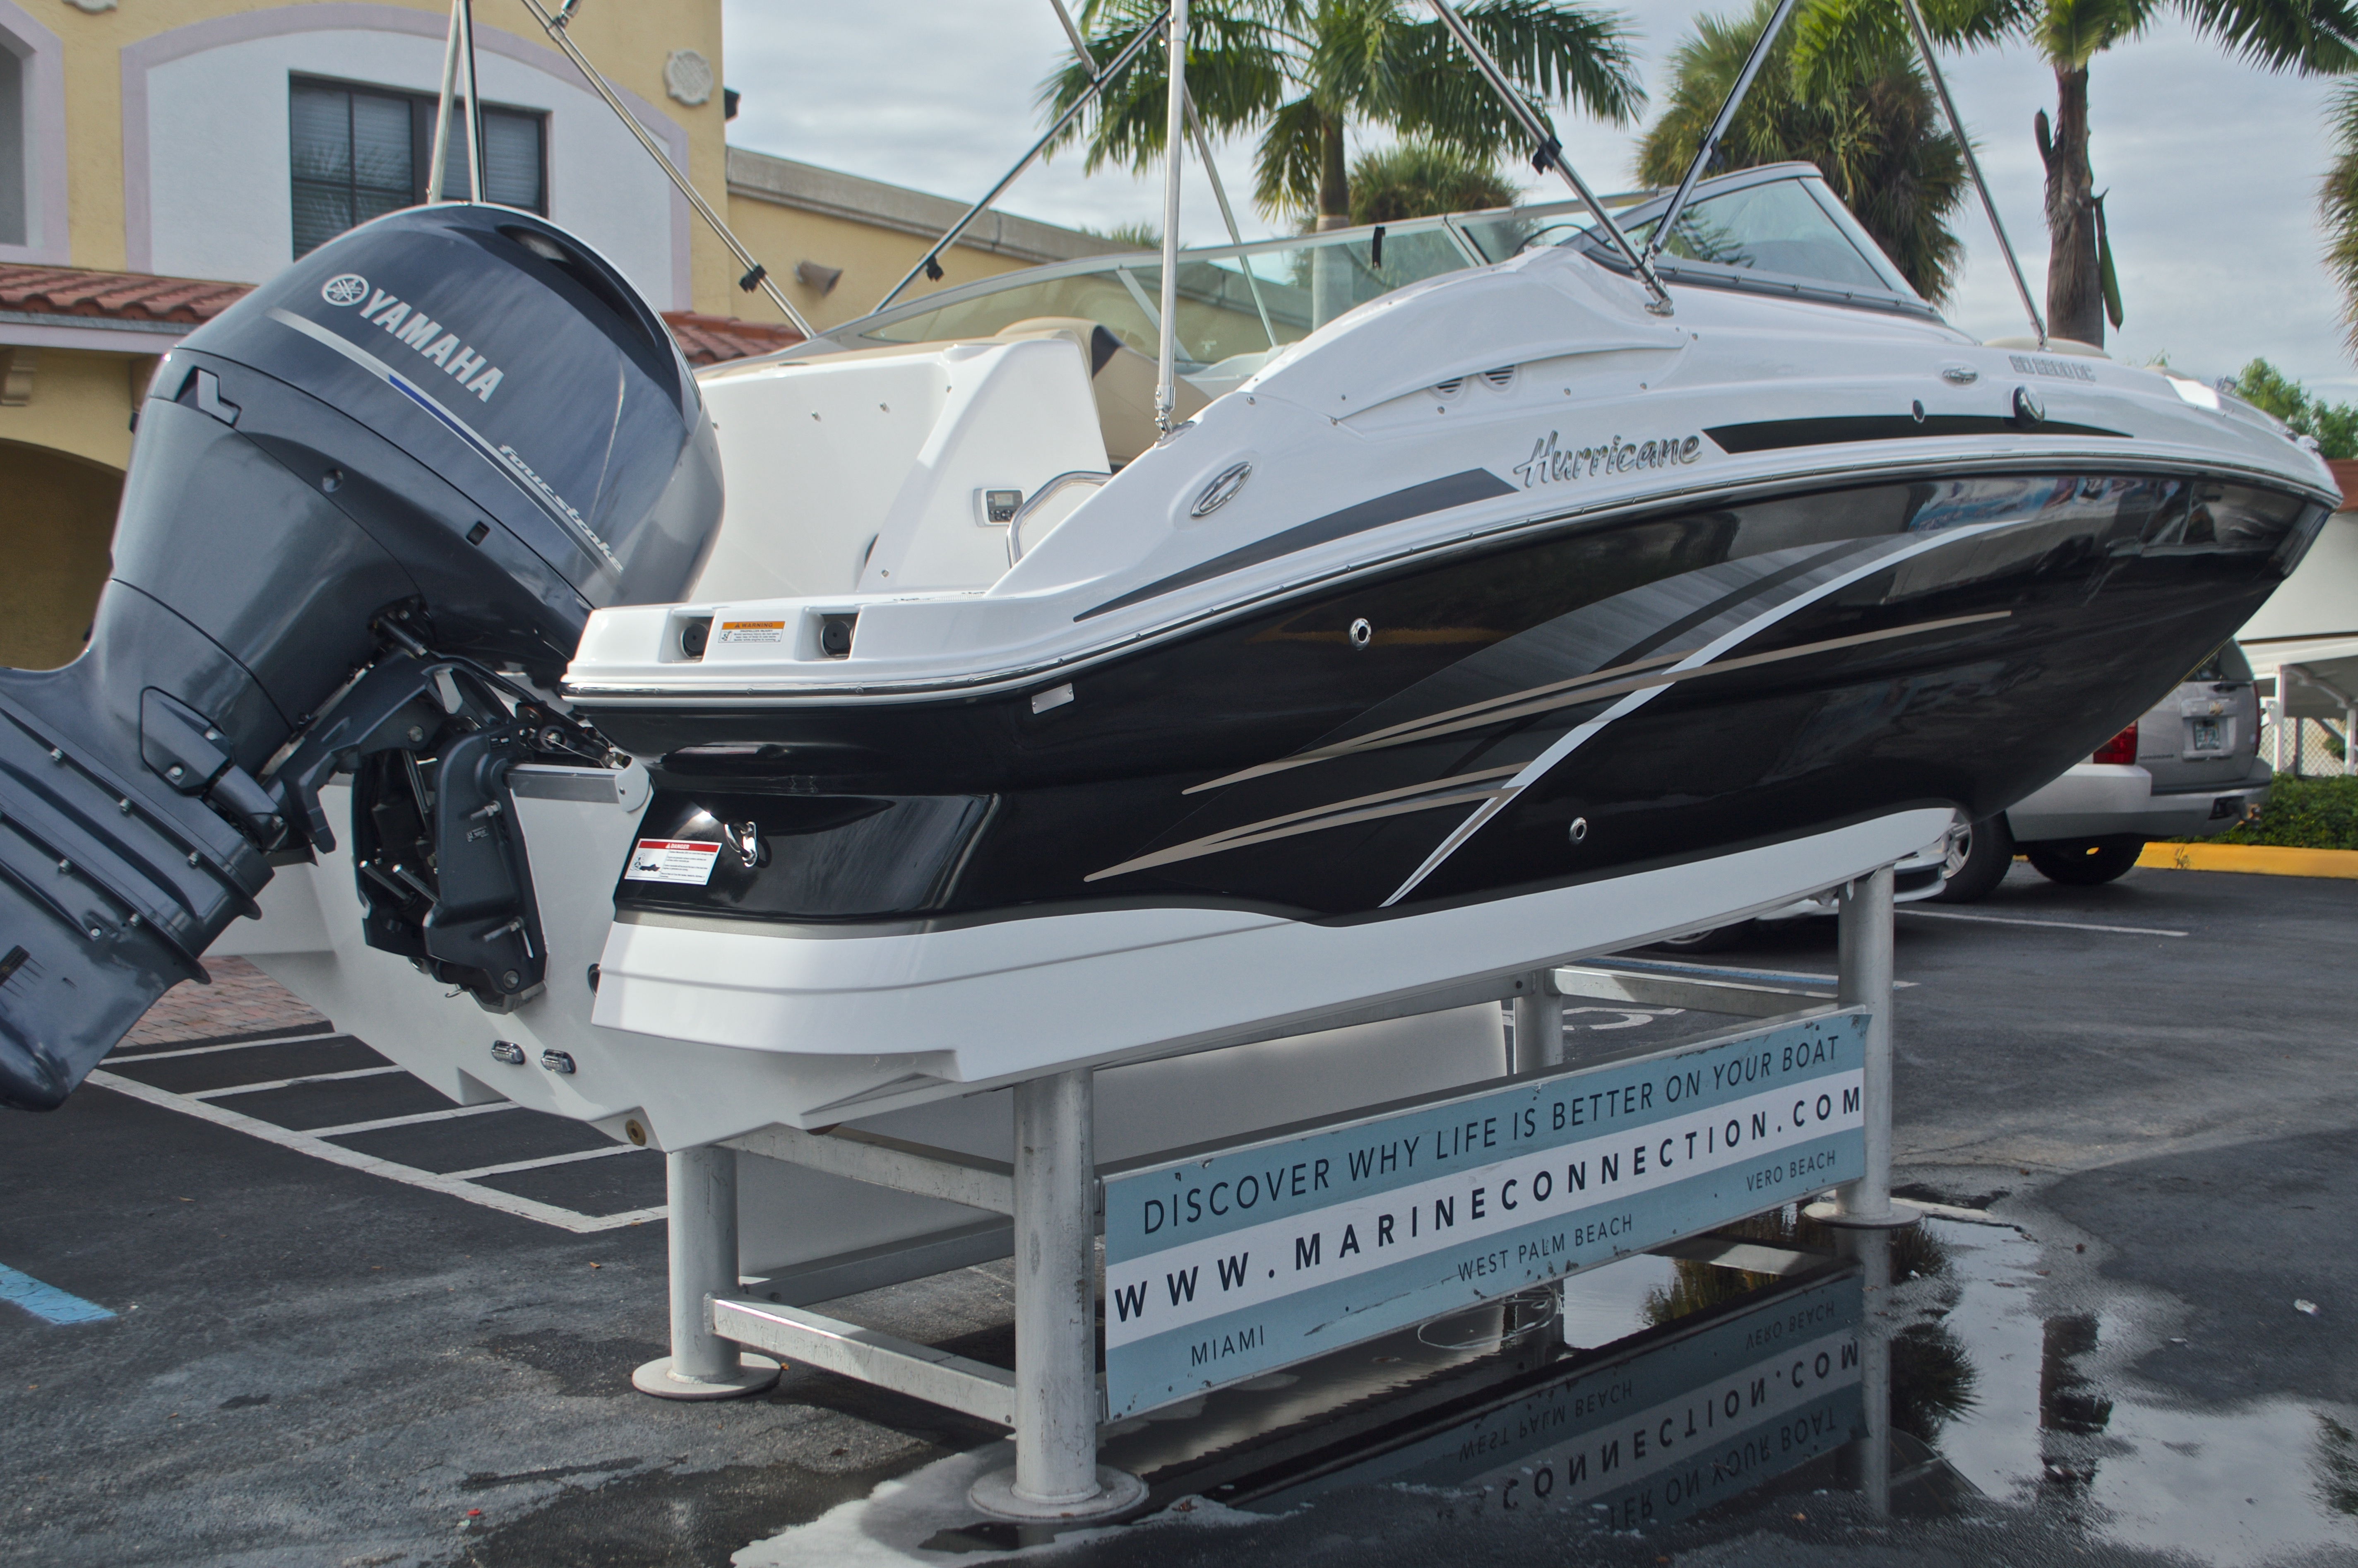 Thumbnail 9 for New 2017 Hurricane SunDeck SD 2200 DC OB boat for sale in West Palm Beach, FL